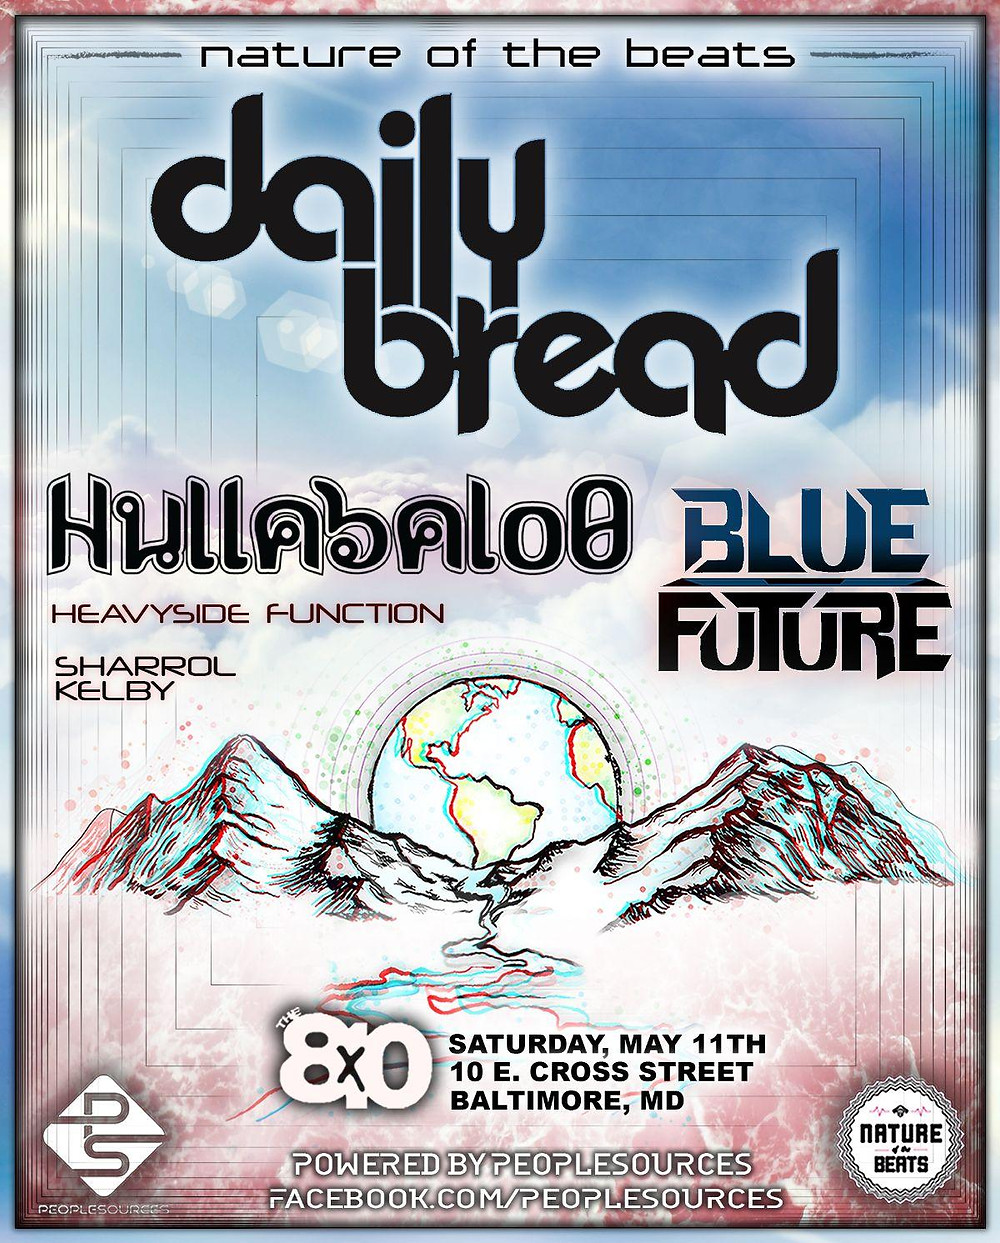 Daily Bread Baltimore Poster